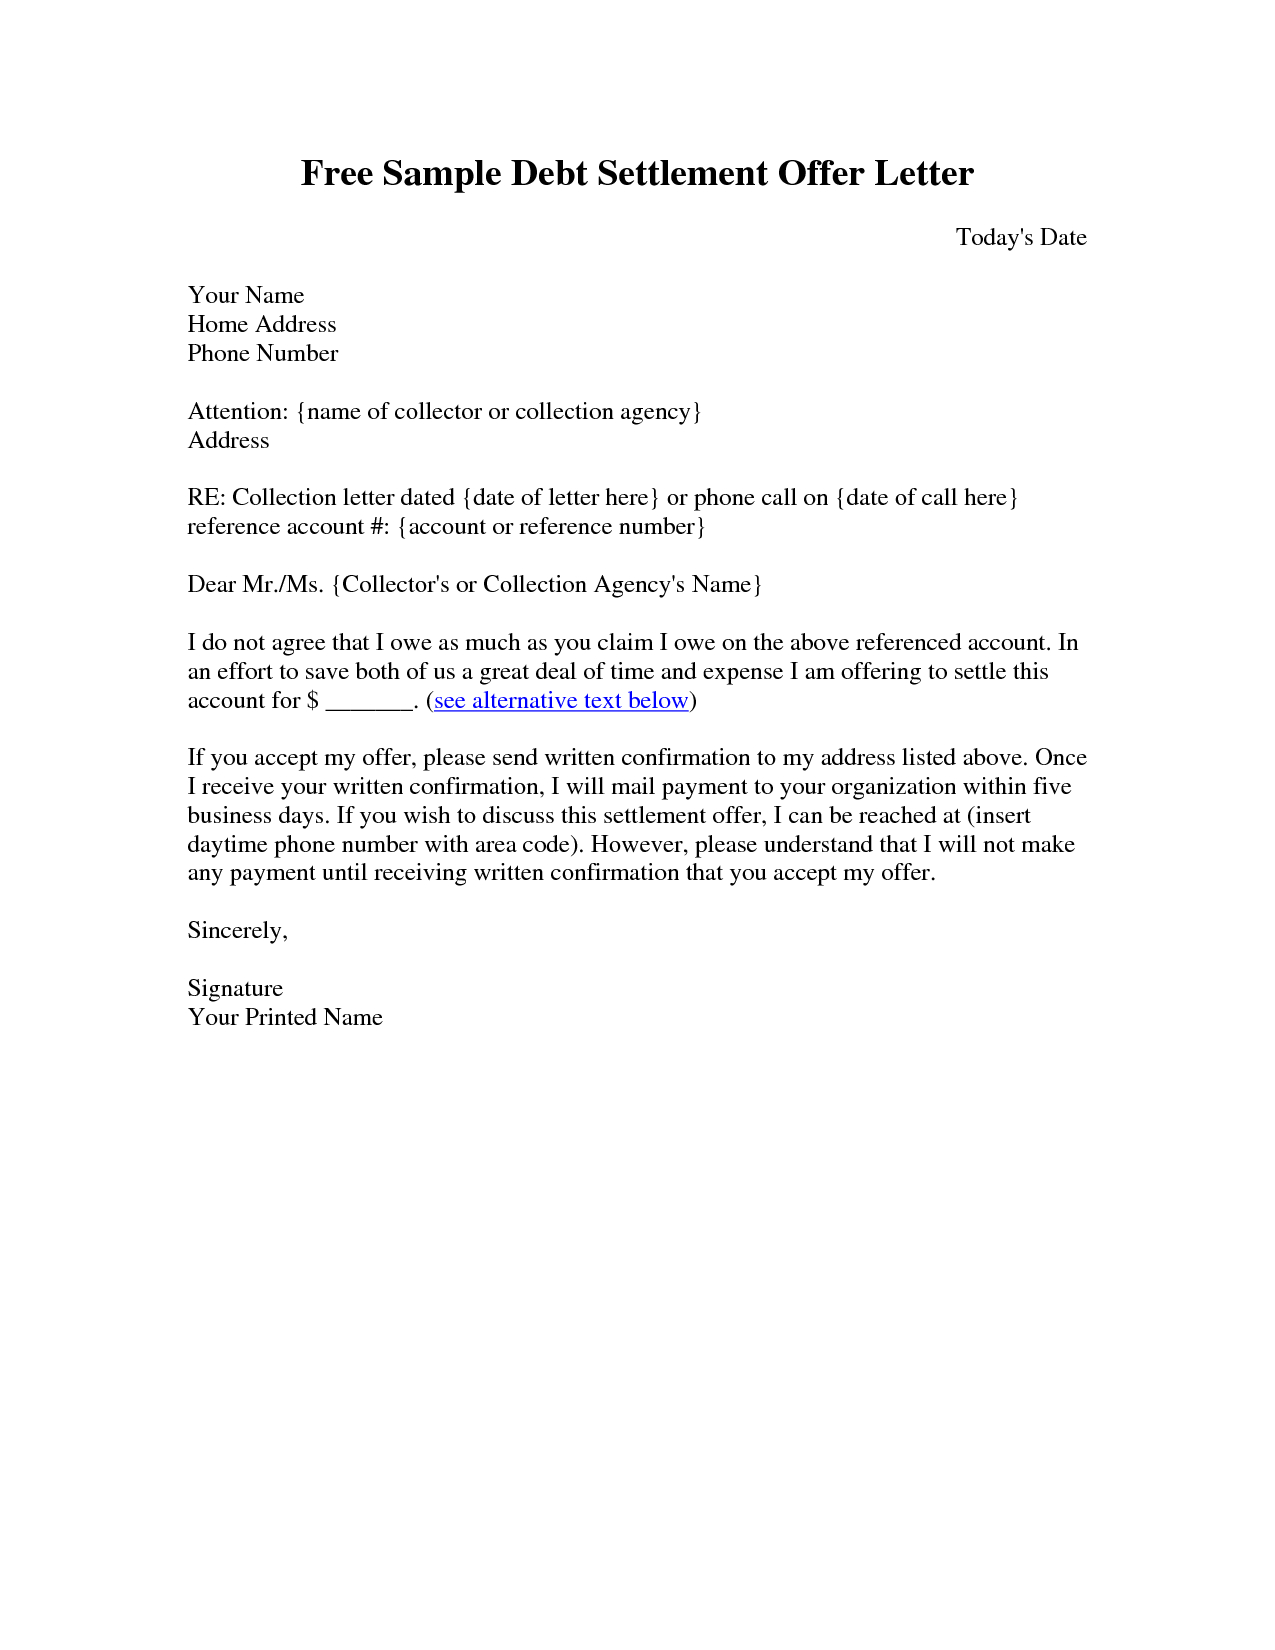 Settlement Offer Letter Template - Sample Settlement Letter Debt Settlement Letter Sample